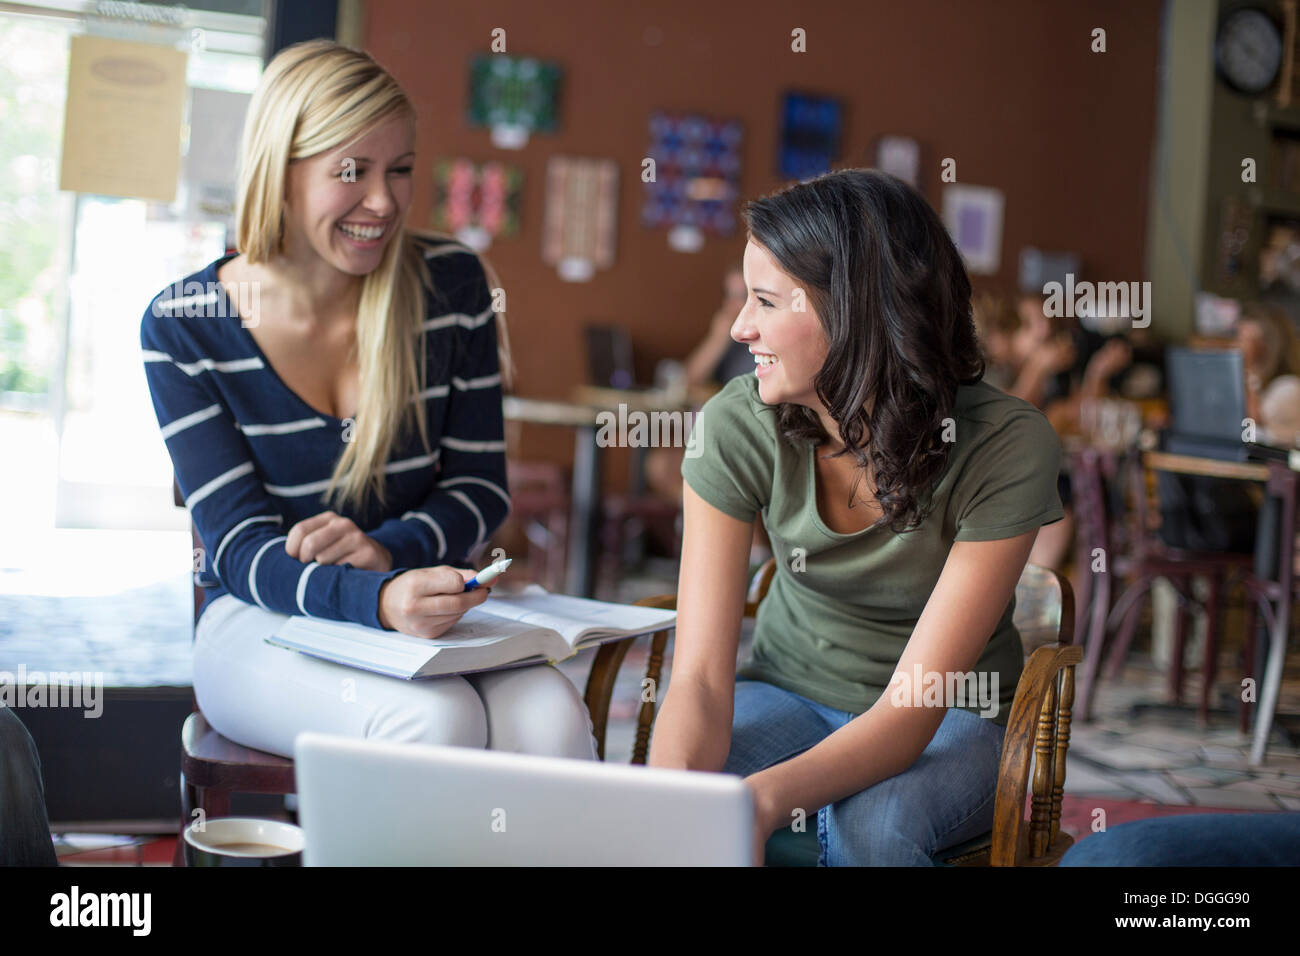 Two teenagers studying with textbooks and computer in cafe - Stock Image